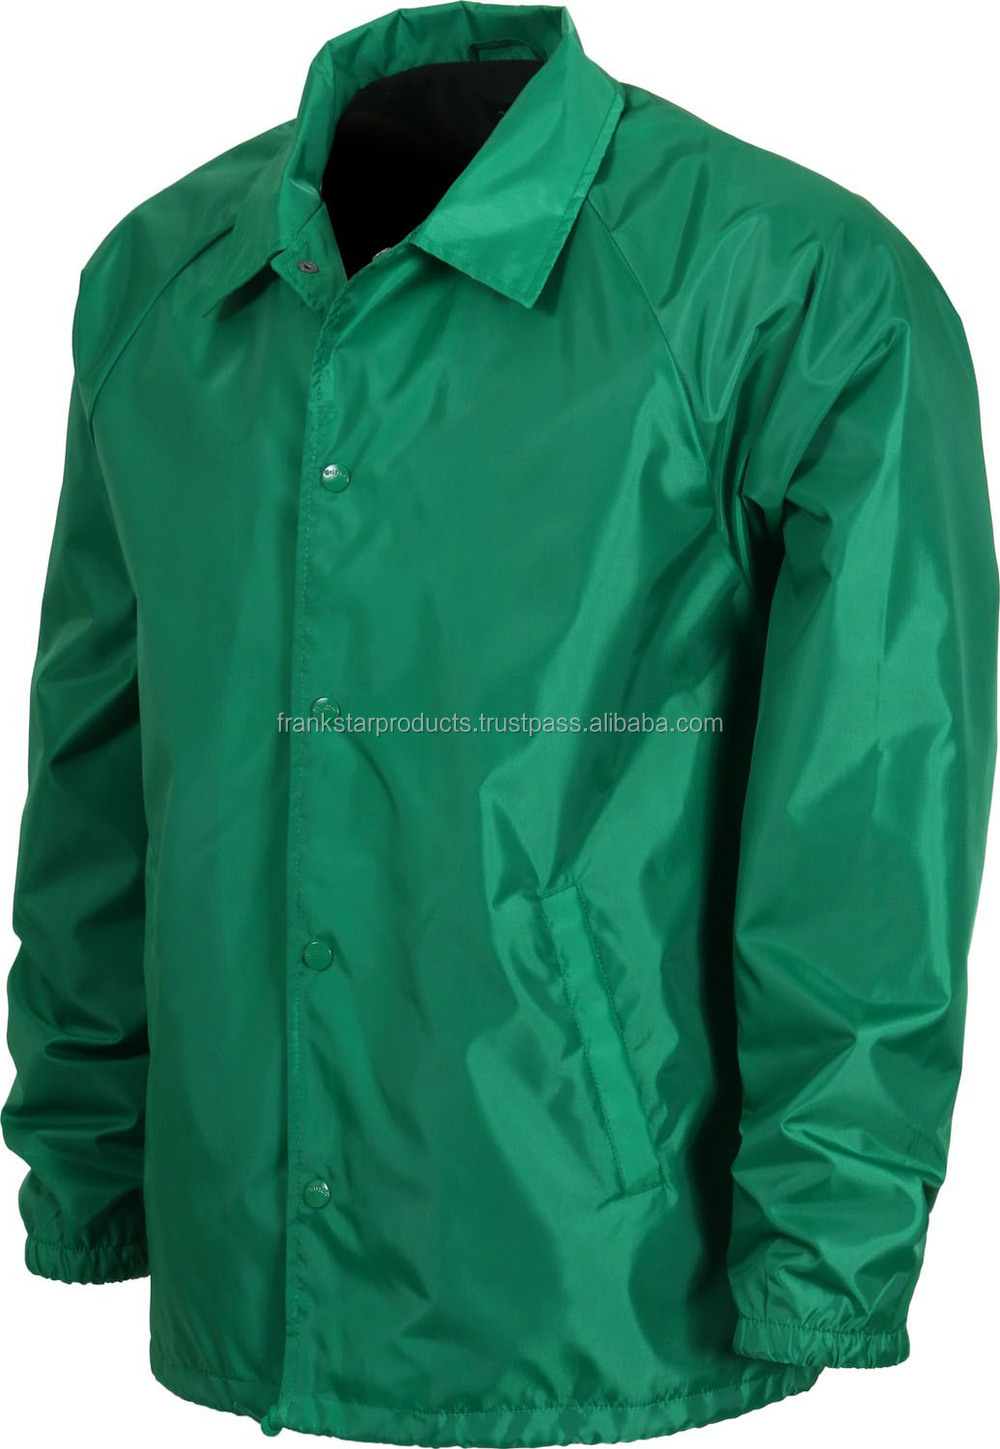 New Custom Made Jacket Polyester / Nylon Coach Jacket Water Proof